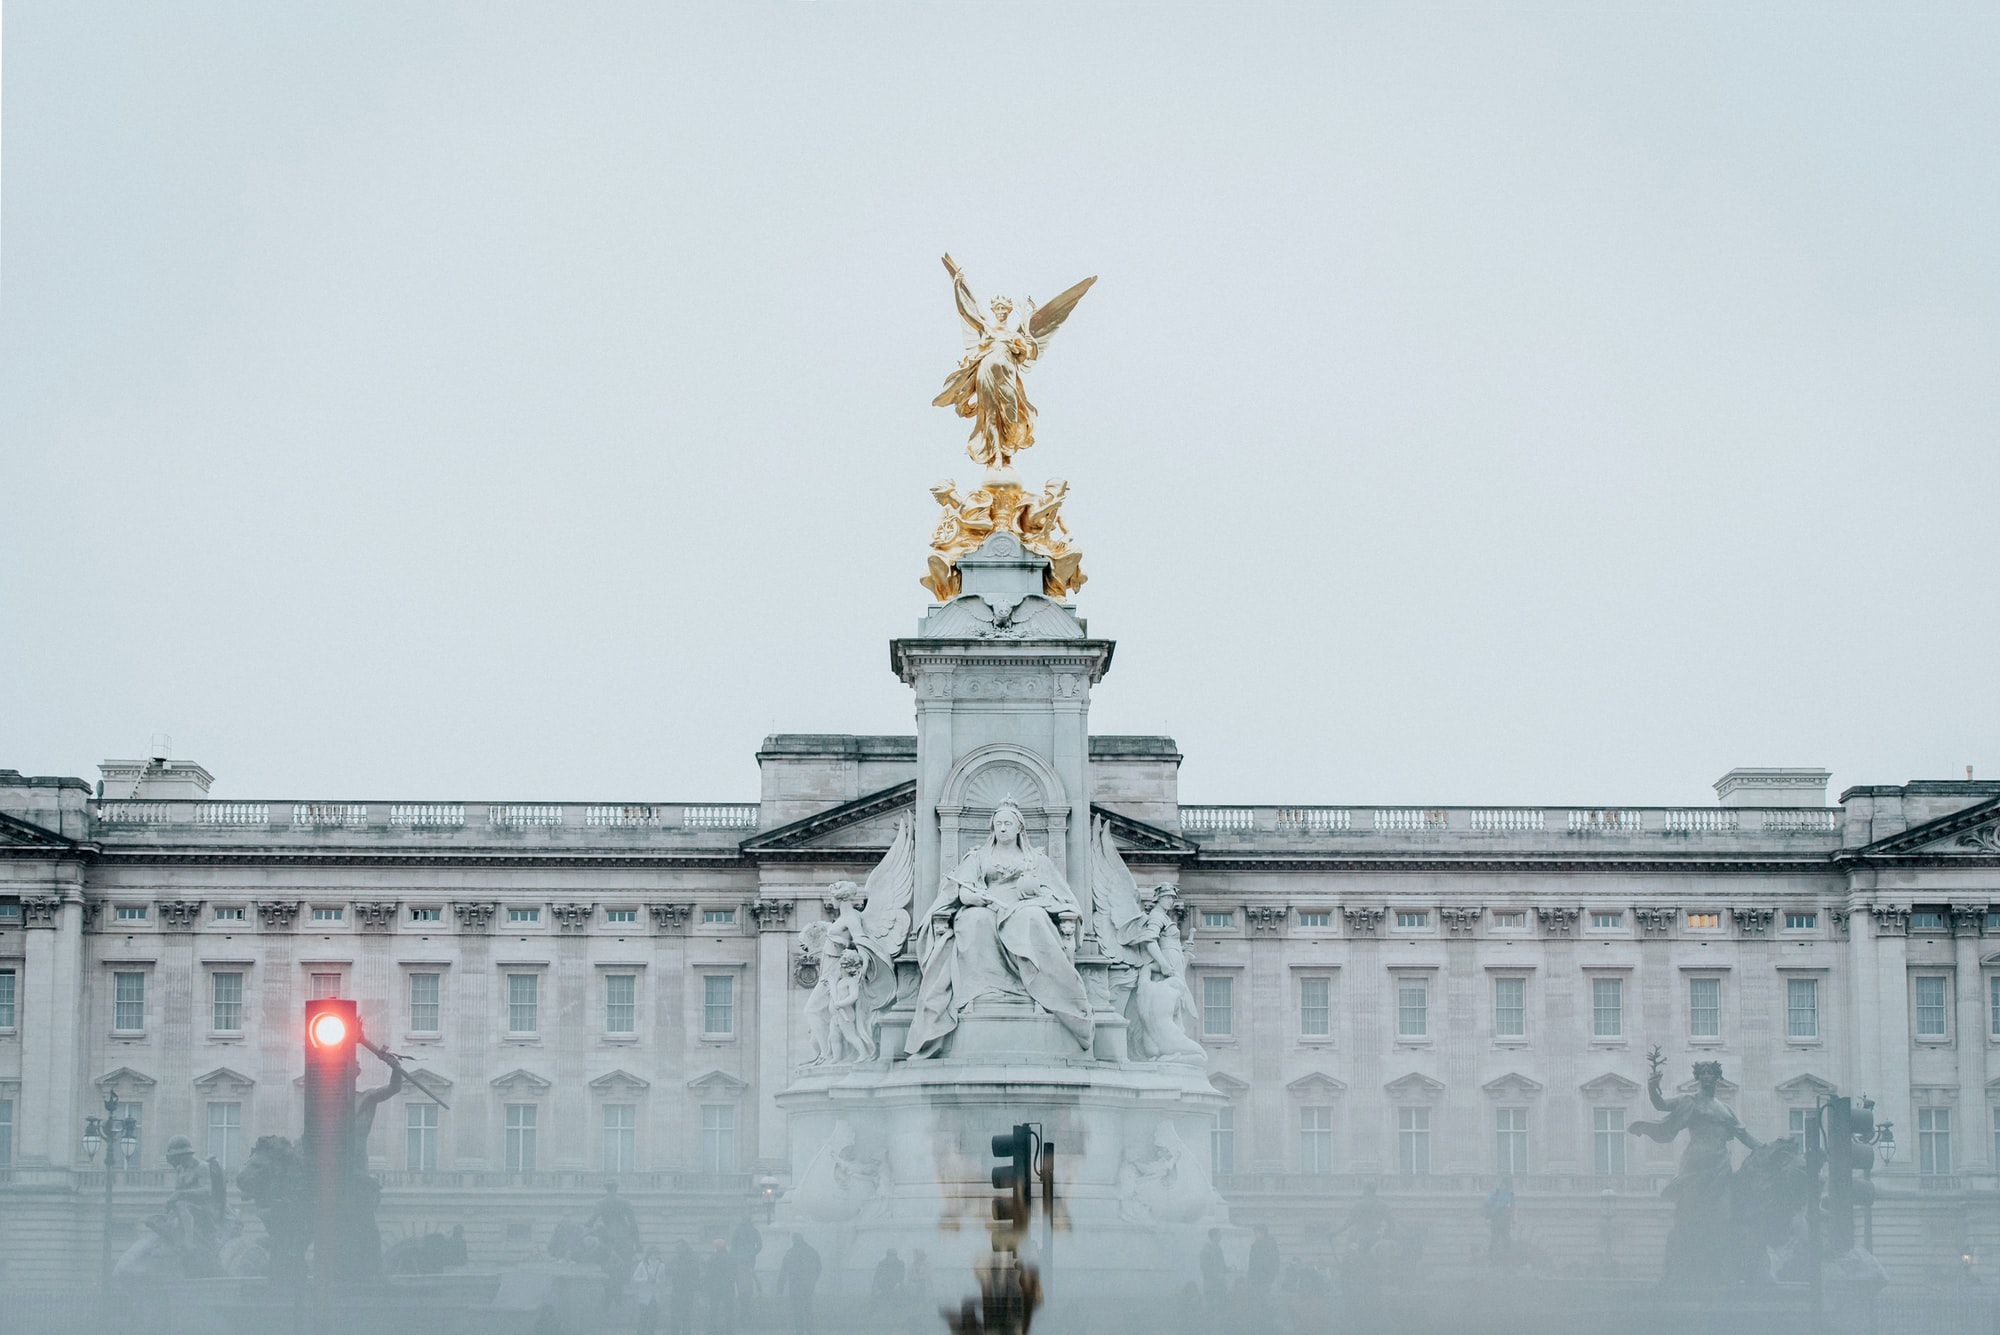 The Monarchy: Expensive, Outdated, Pointless